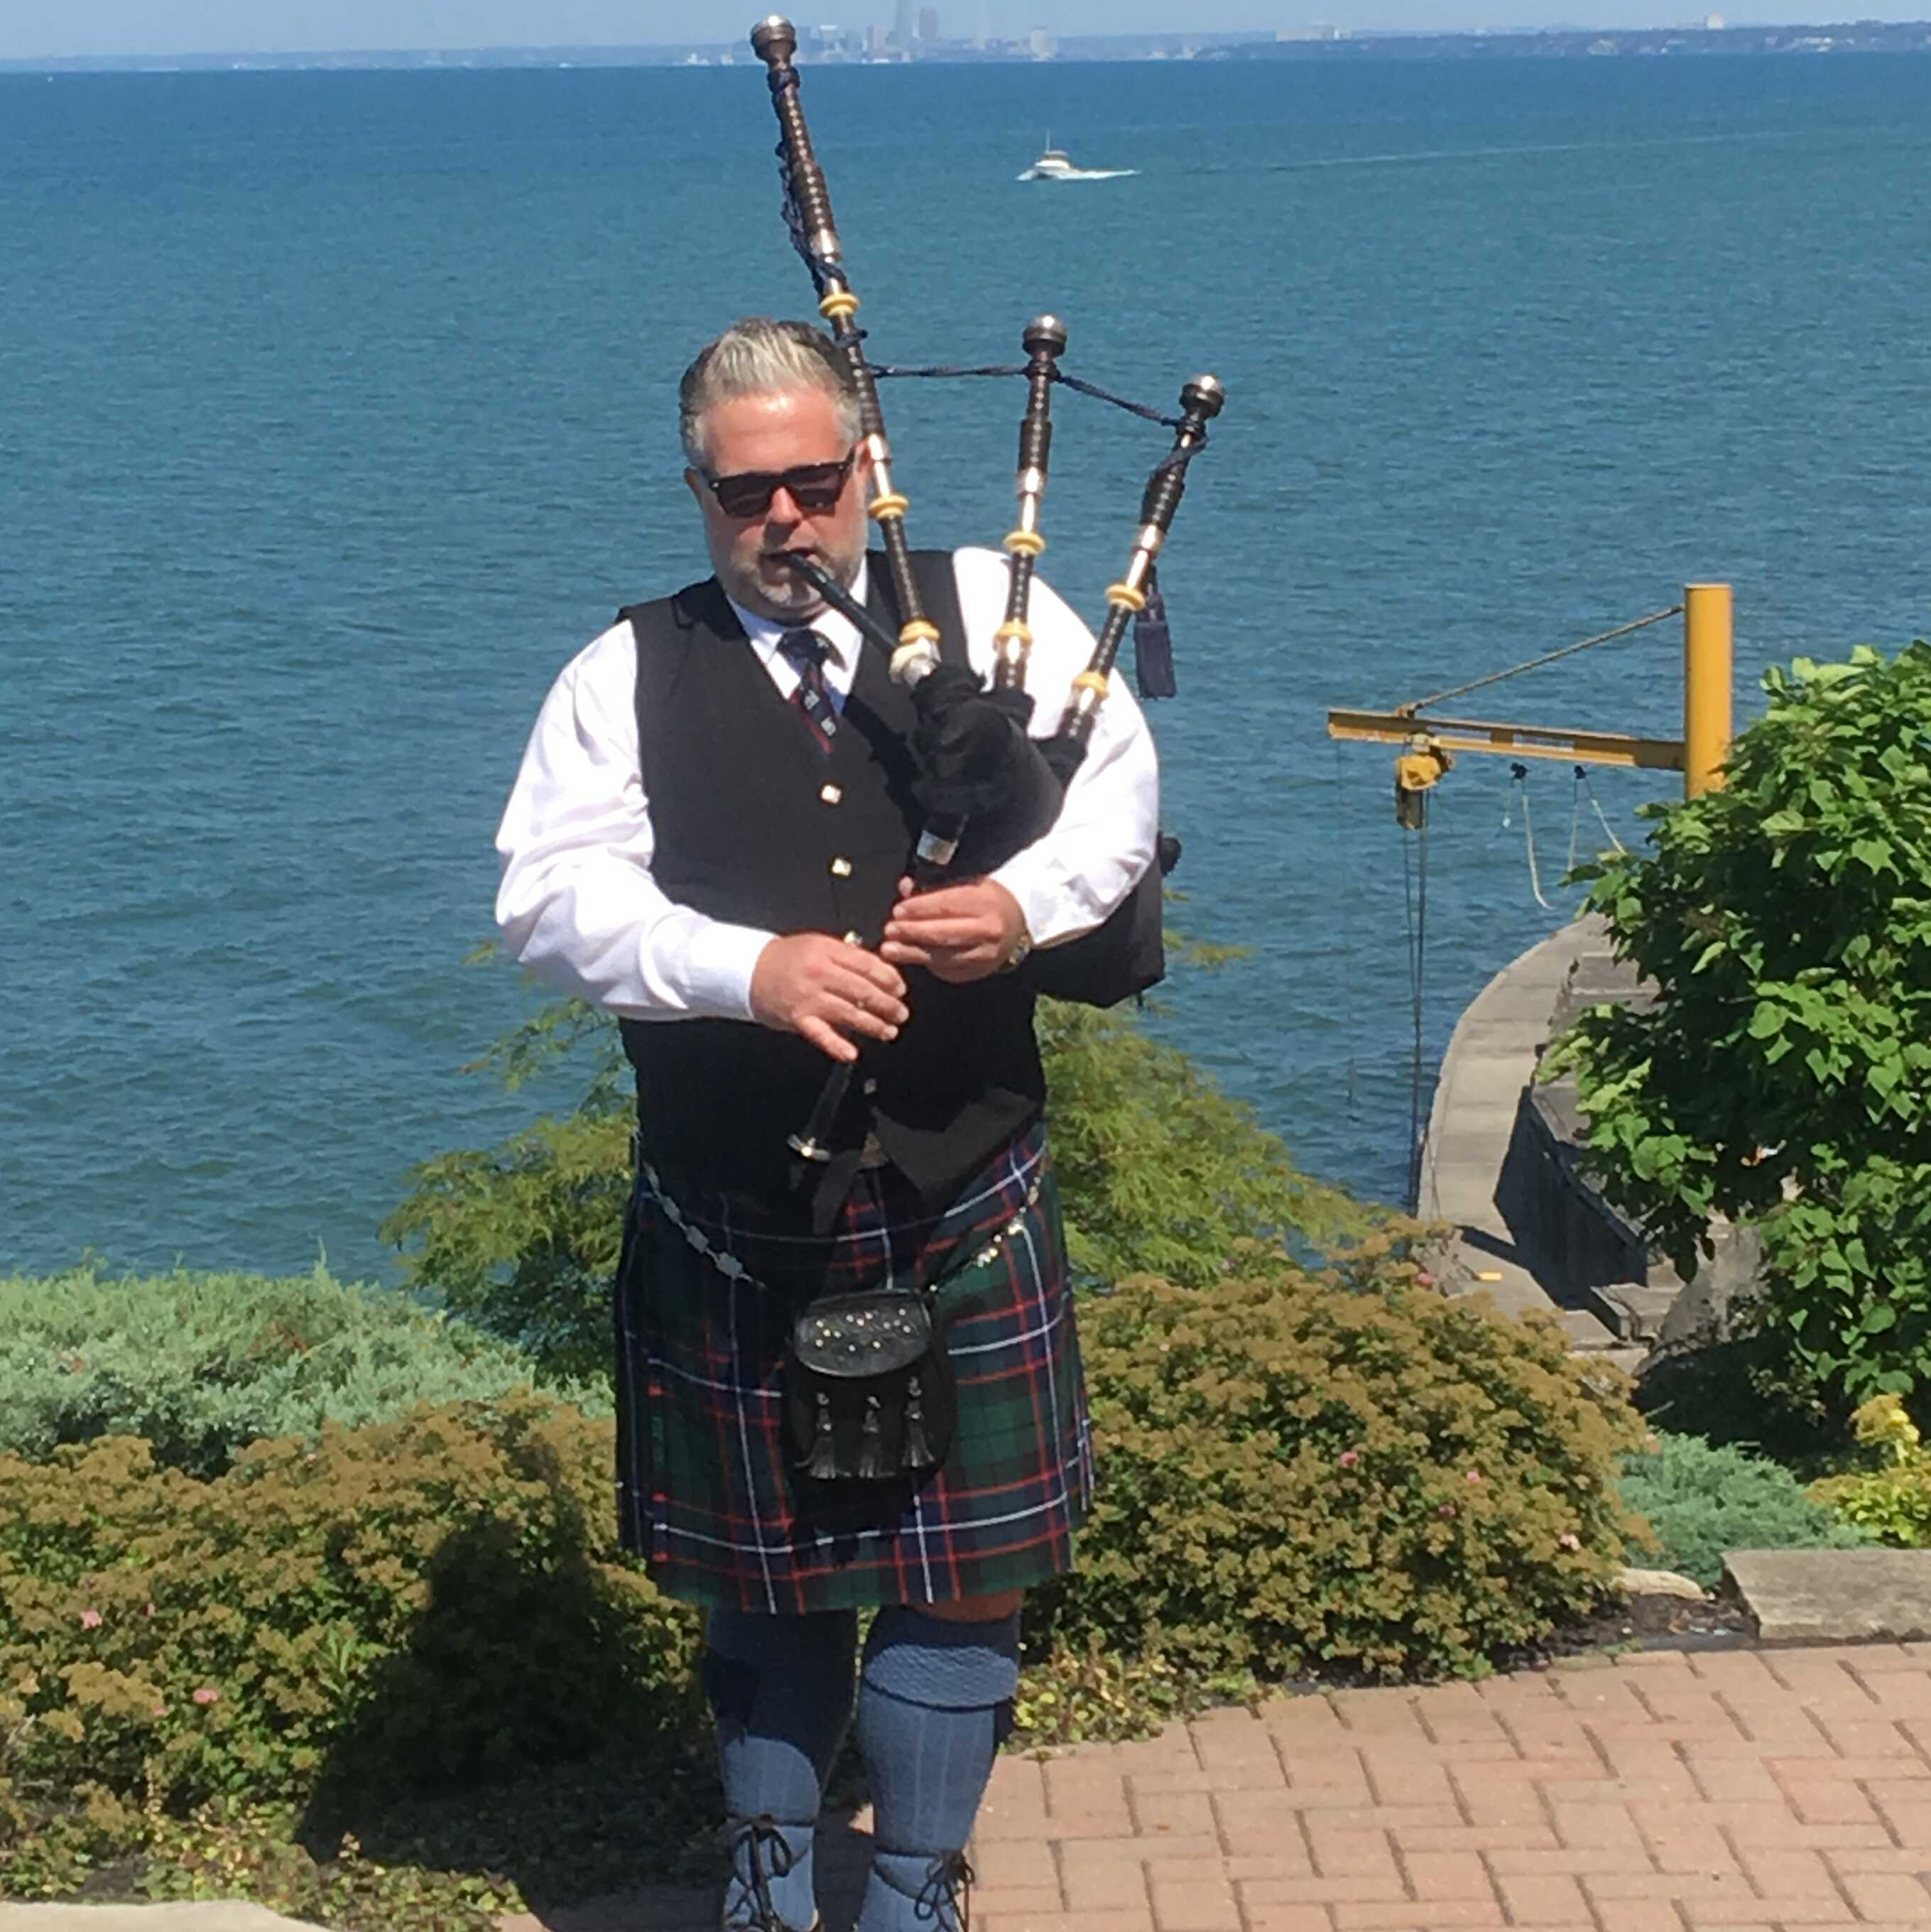 Michael Crawley has been playing bagpipes for over 22 years, playing in all major venues throughout Northeast Ohio, including Blossom, Quicken Loans Arena, Progressive Field, dating as far back as the Richfield Coliseum.  Michael is the Pipe Major of the 87th Cleveland Pipe Band, and has played bagpipes competitively all over the world.